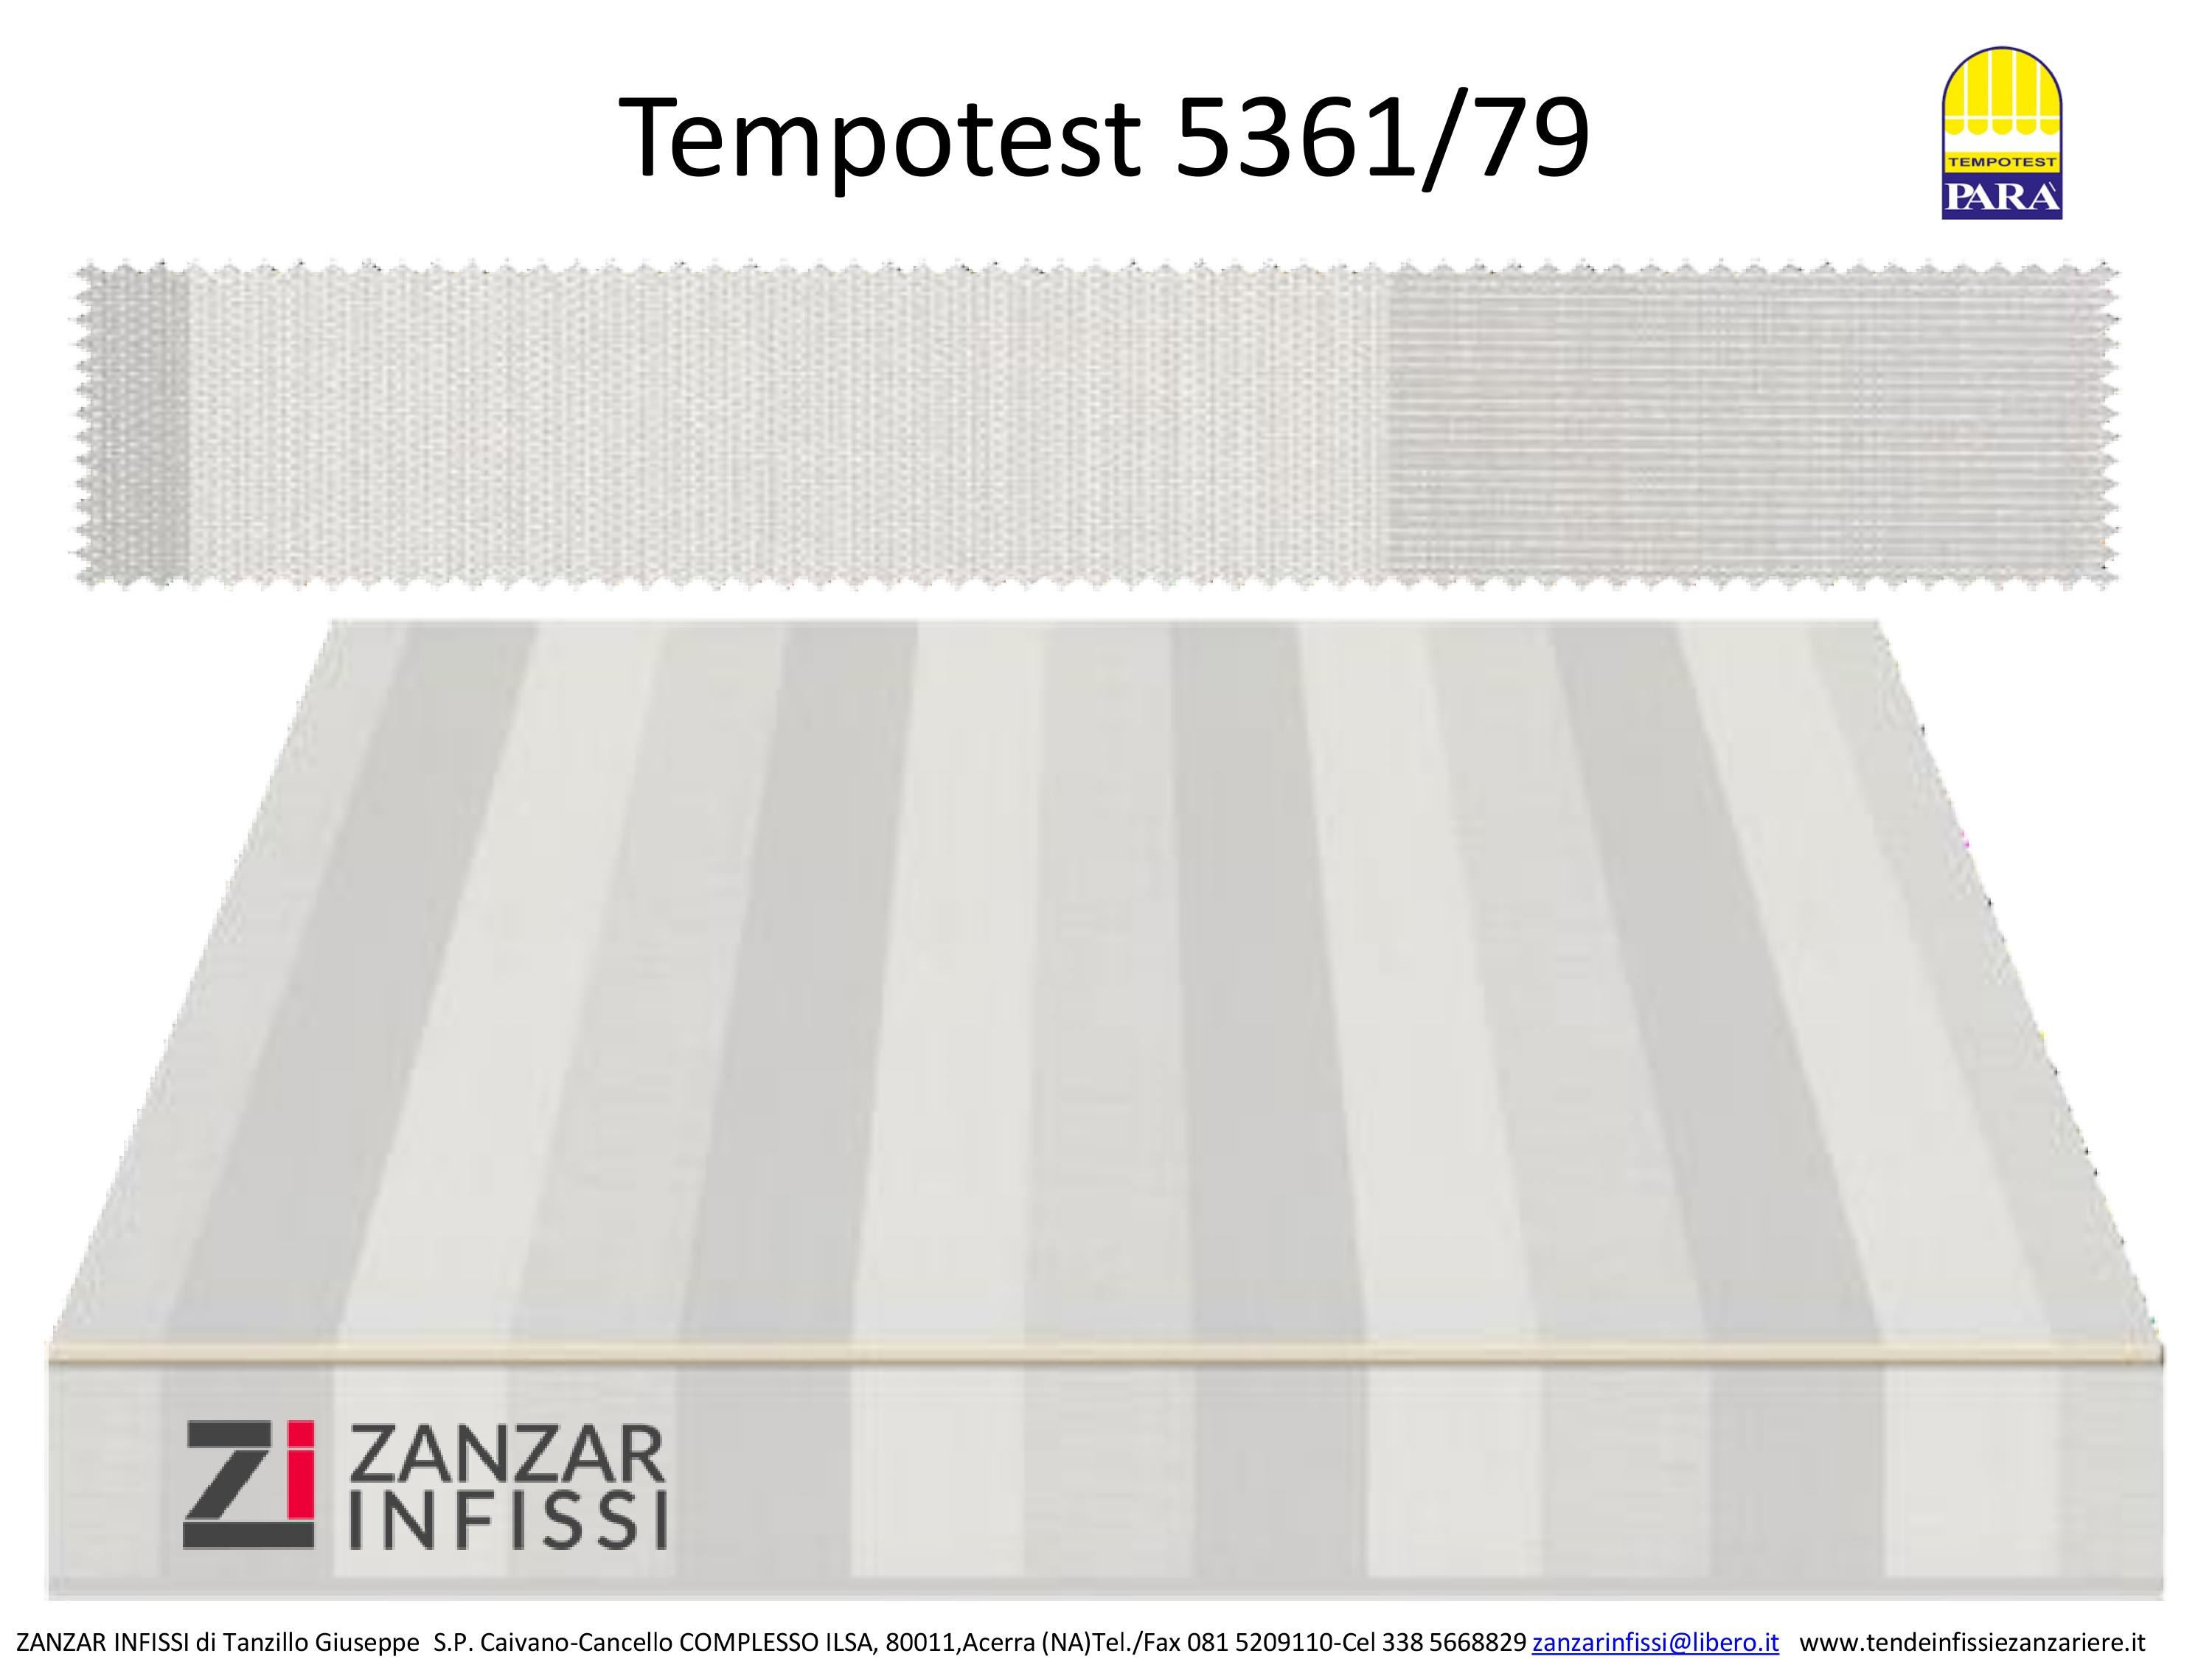 Tempotest 5361/79